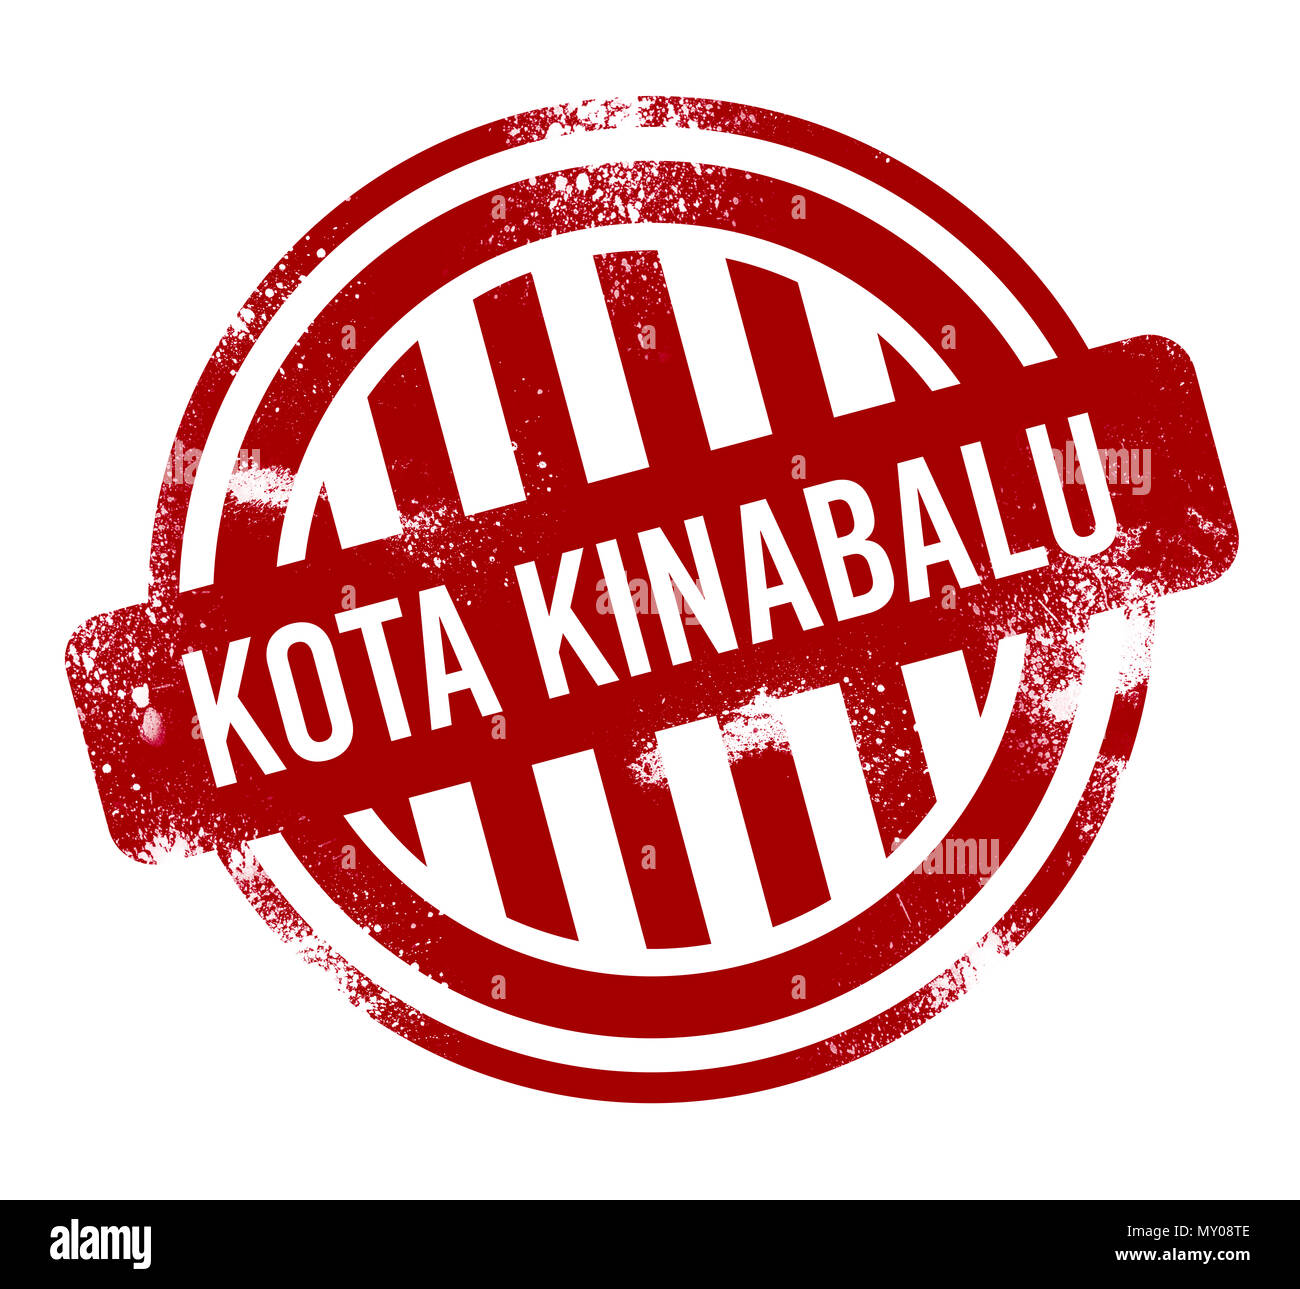 Kota Kinabalu - Red grunge button, stamp - Stock Image